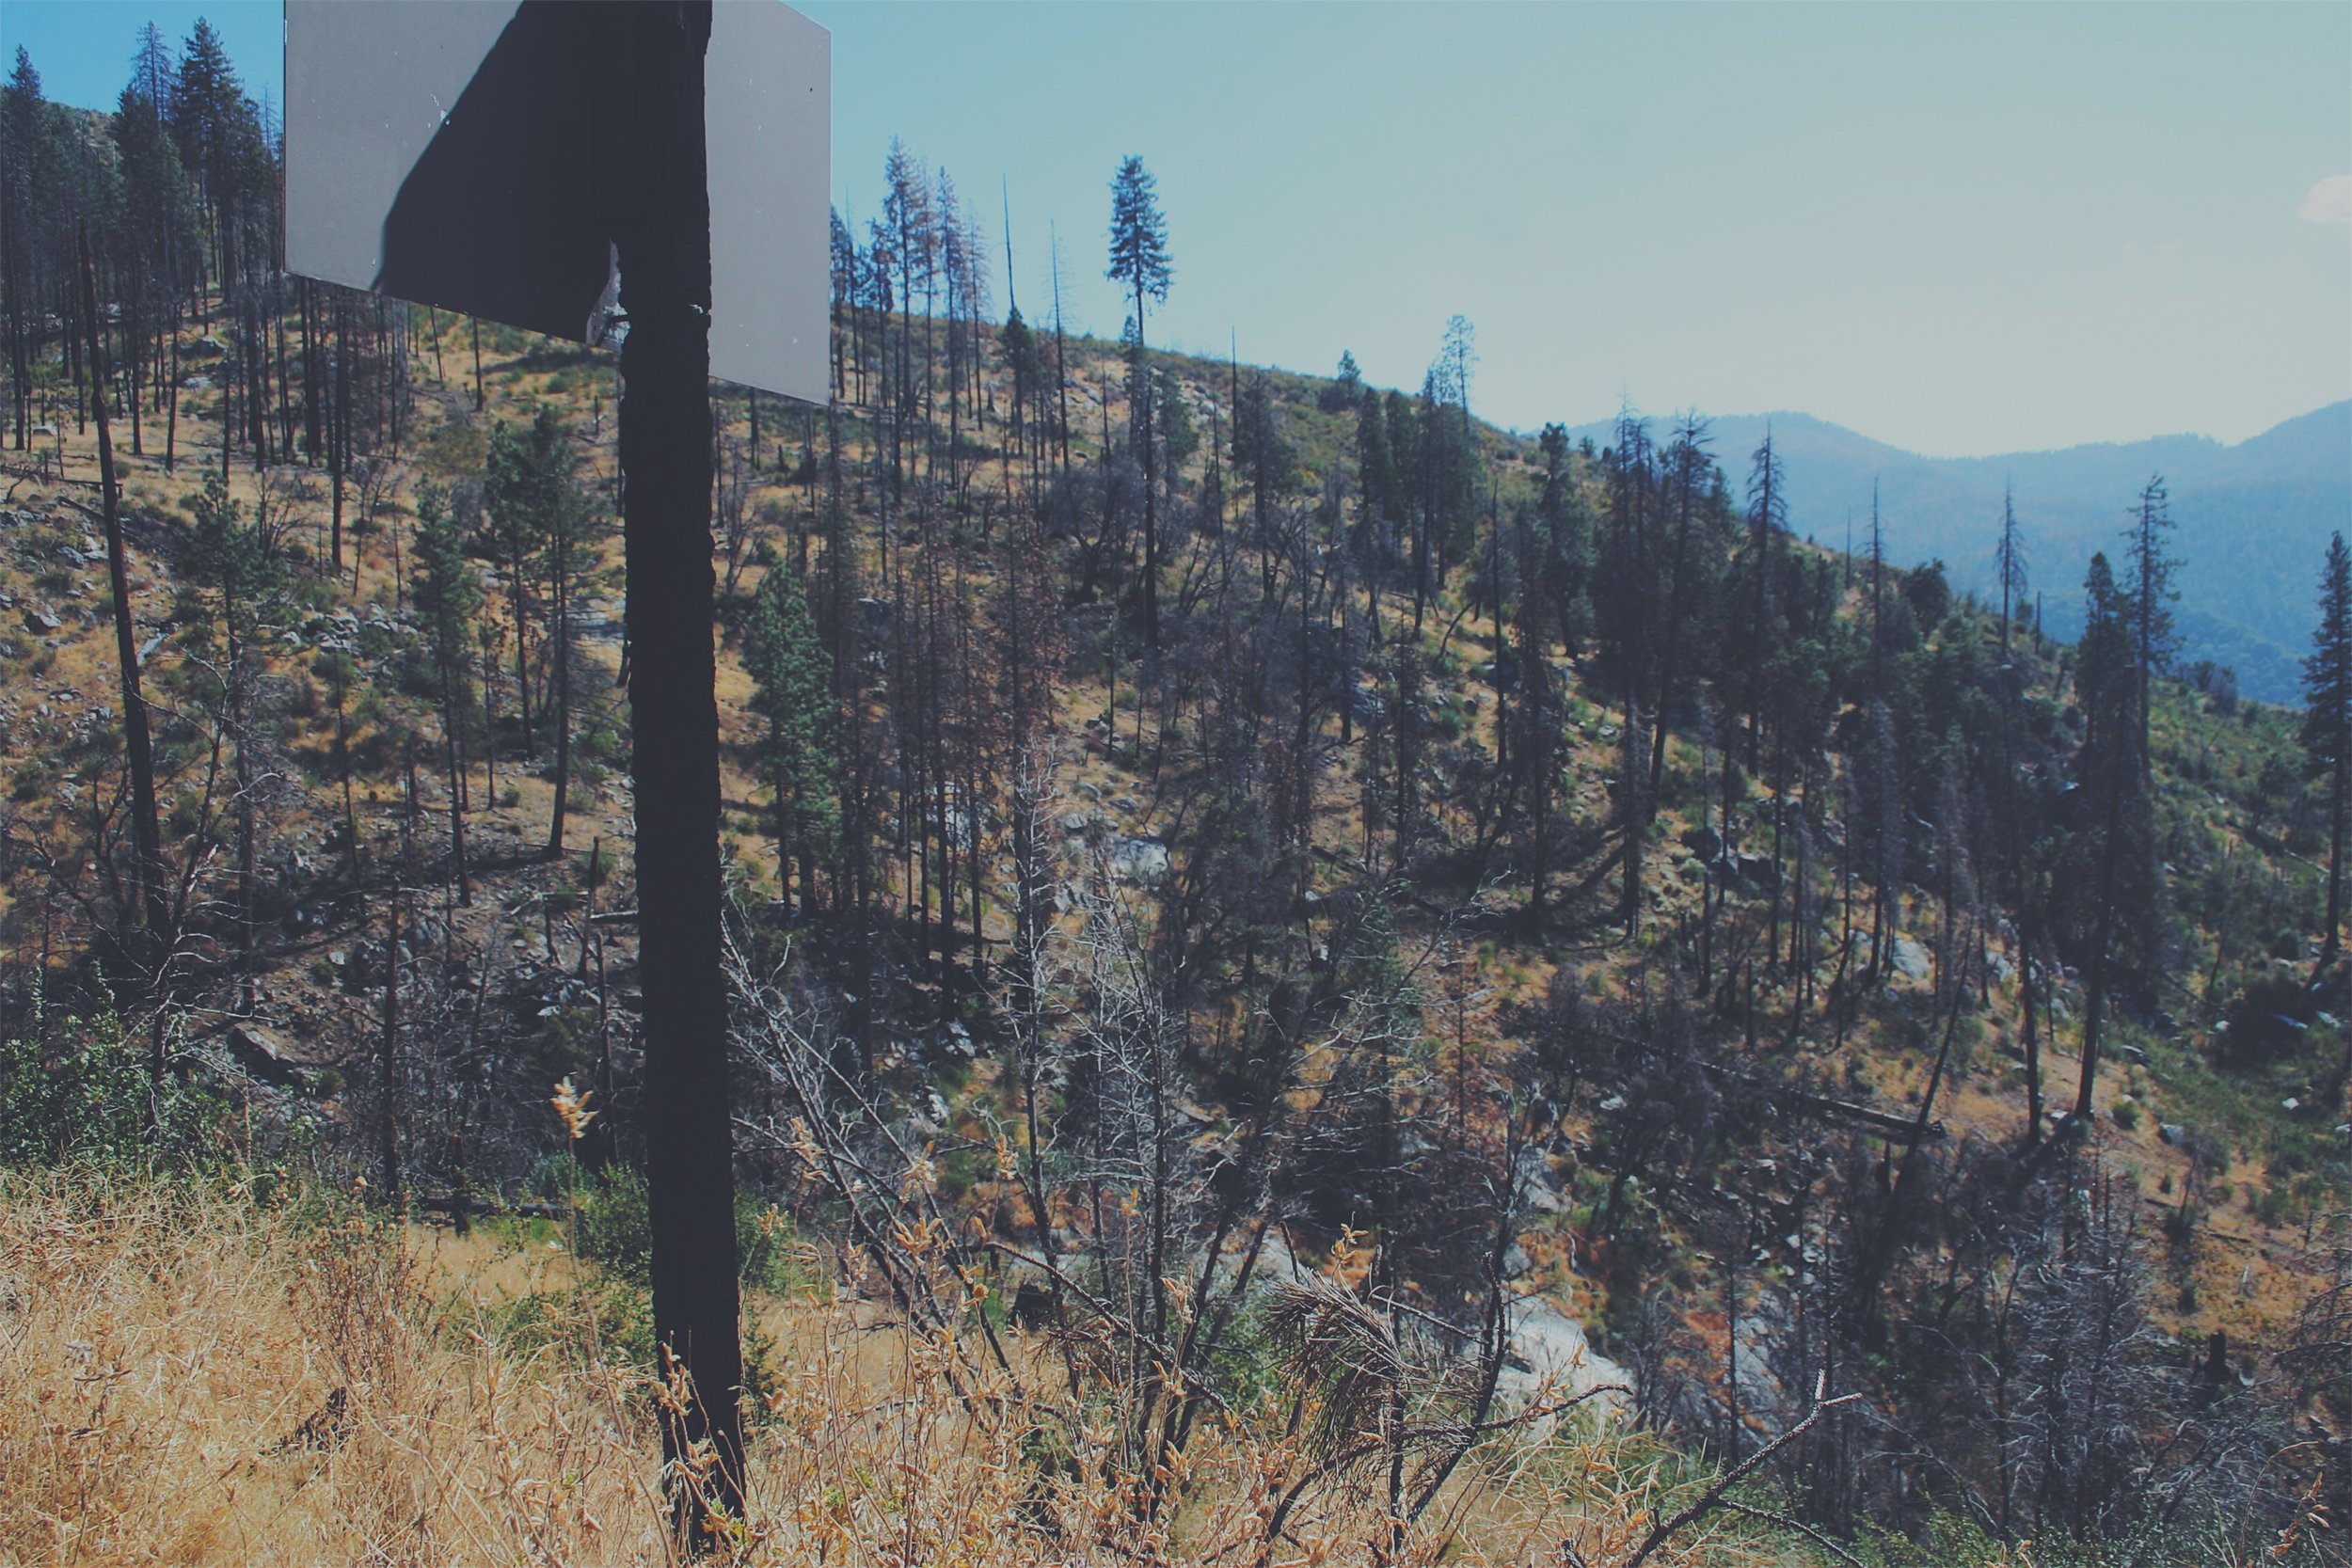 Post fire, Foresta, CA. Yosemite NP. Elder is growing back all around. The Ferguson Fire in August 2018 just burned this whole creek and hillside up again.